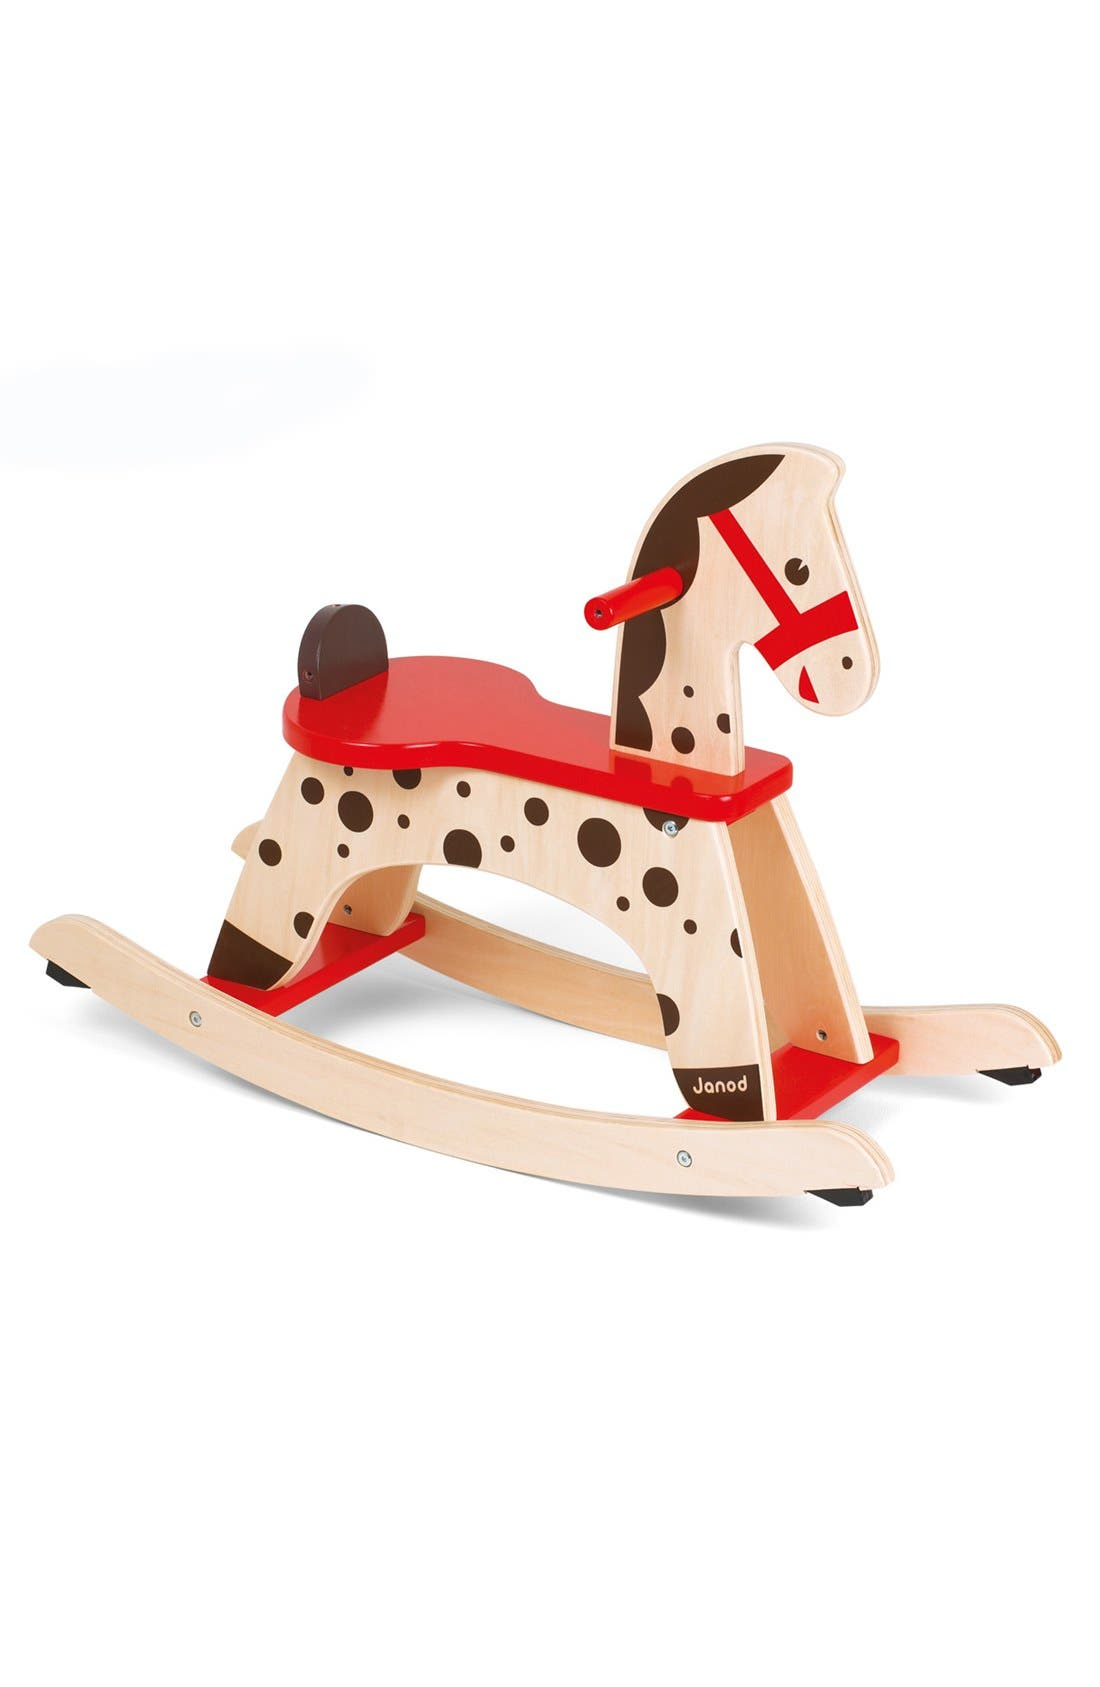 Janod 'Caramel' Wood Rocking Horse (Toddler)